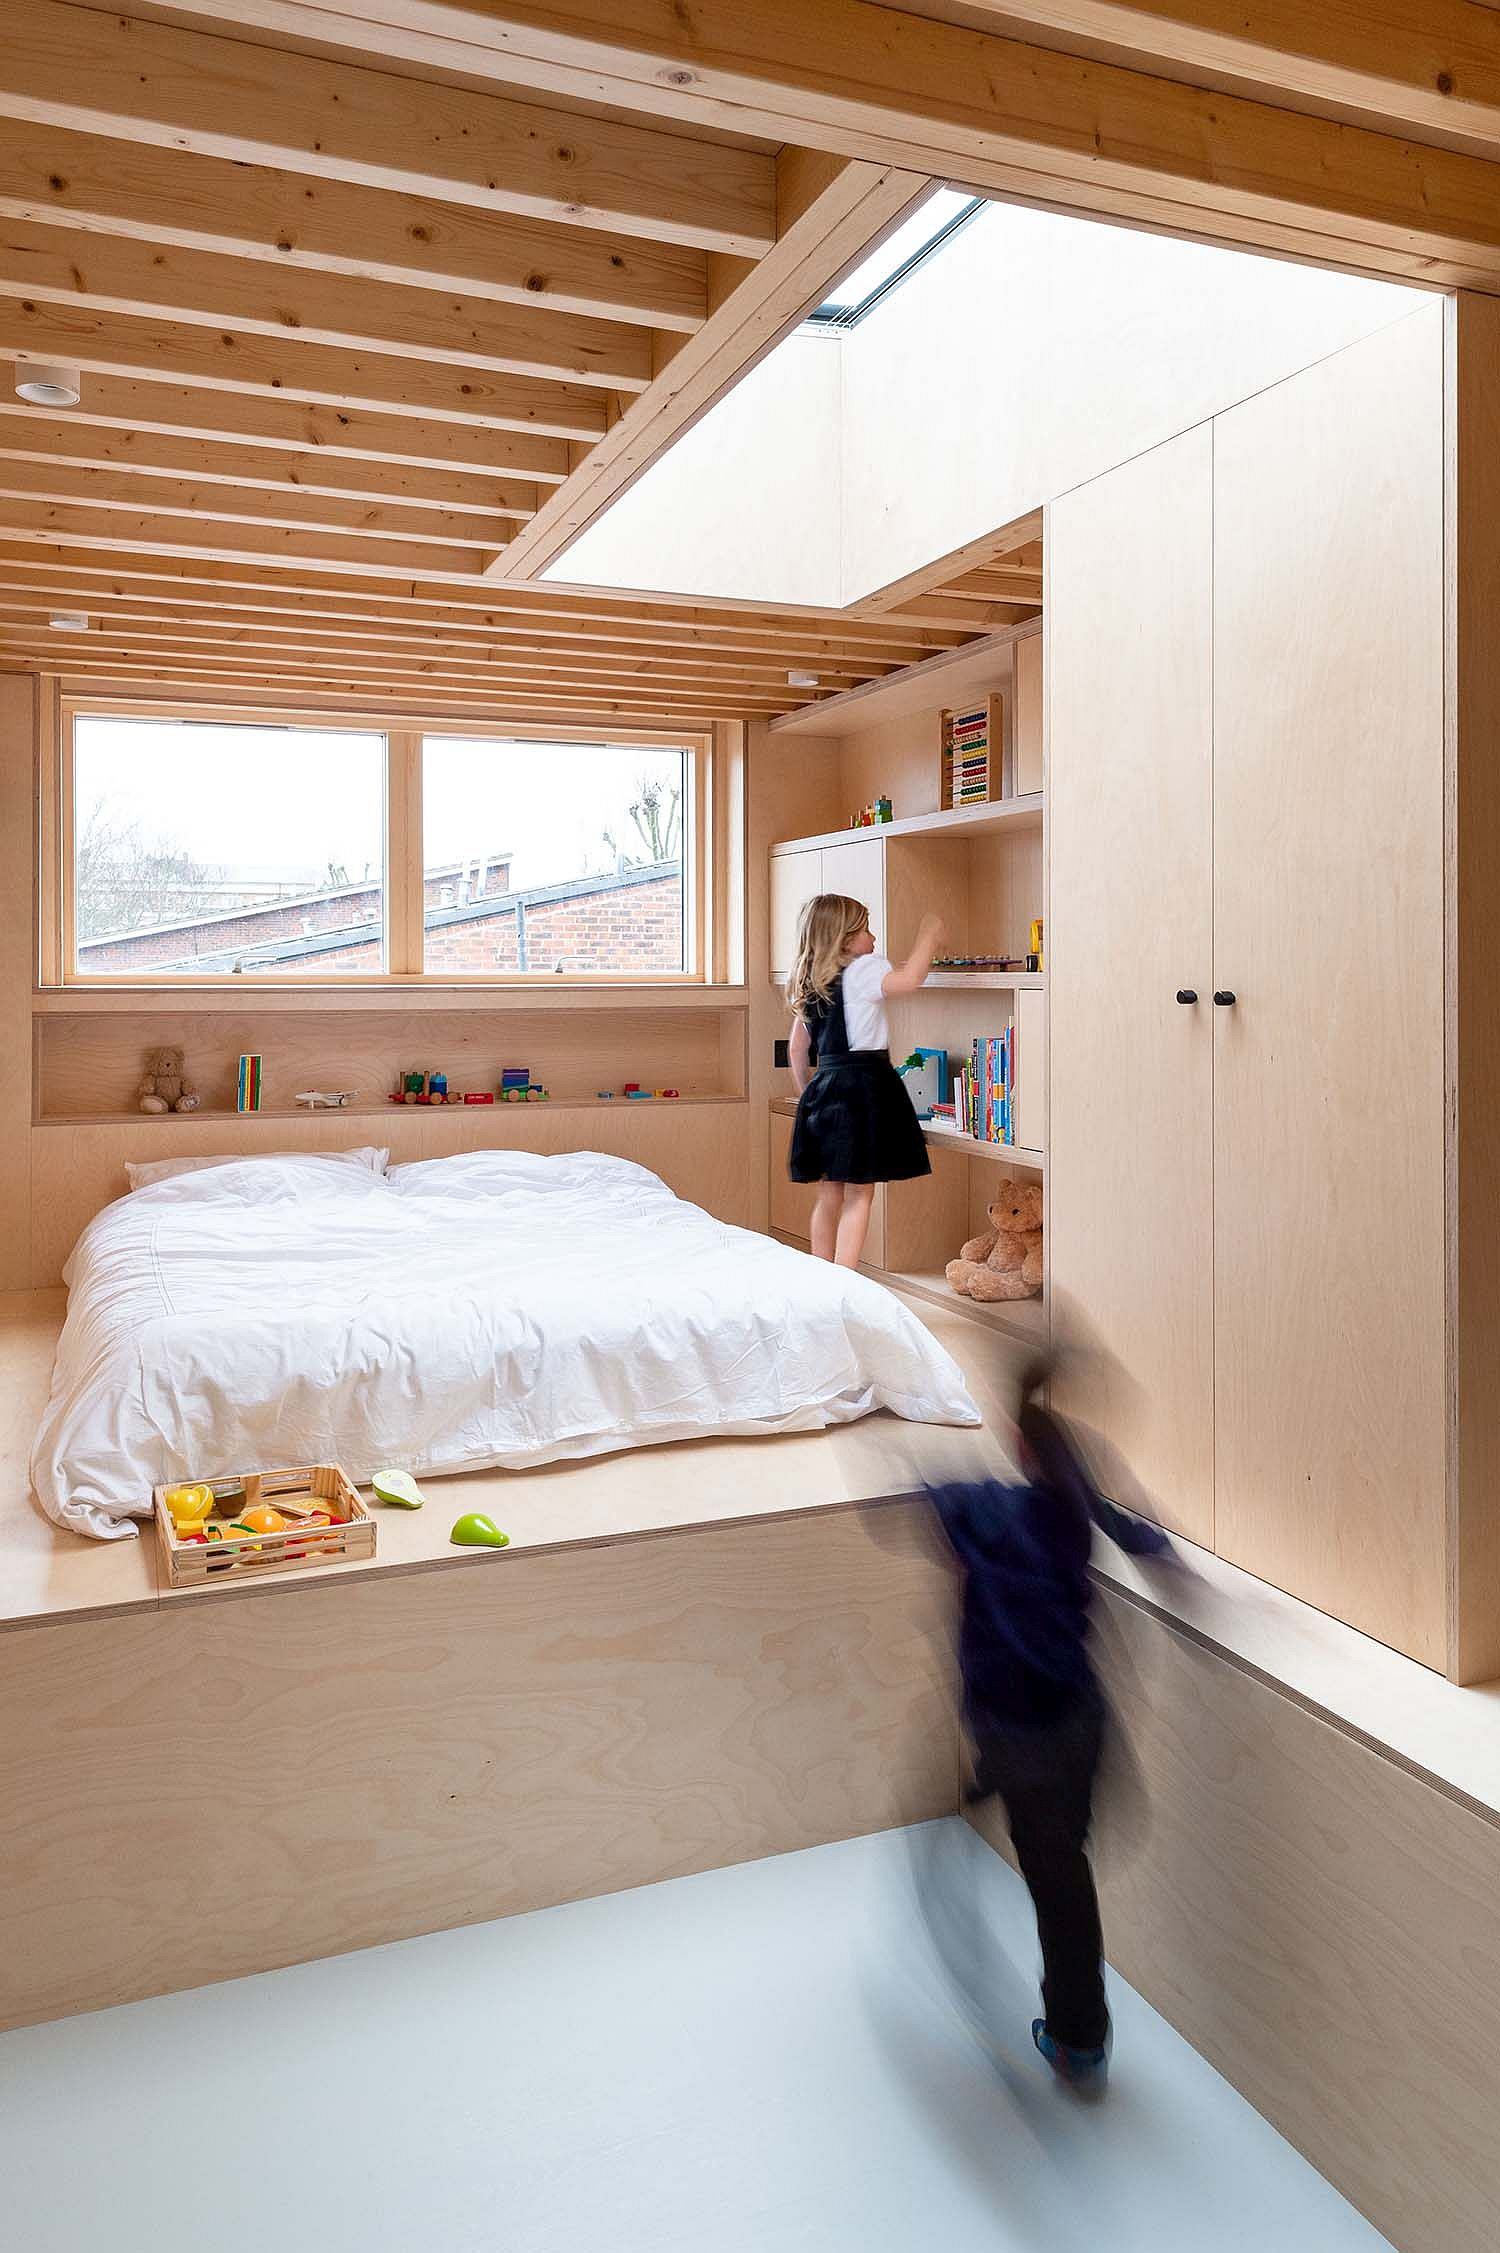 Upper level kids' bedroom with exposed ceiling beams in wood and a backdrop in white